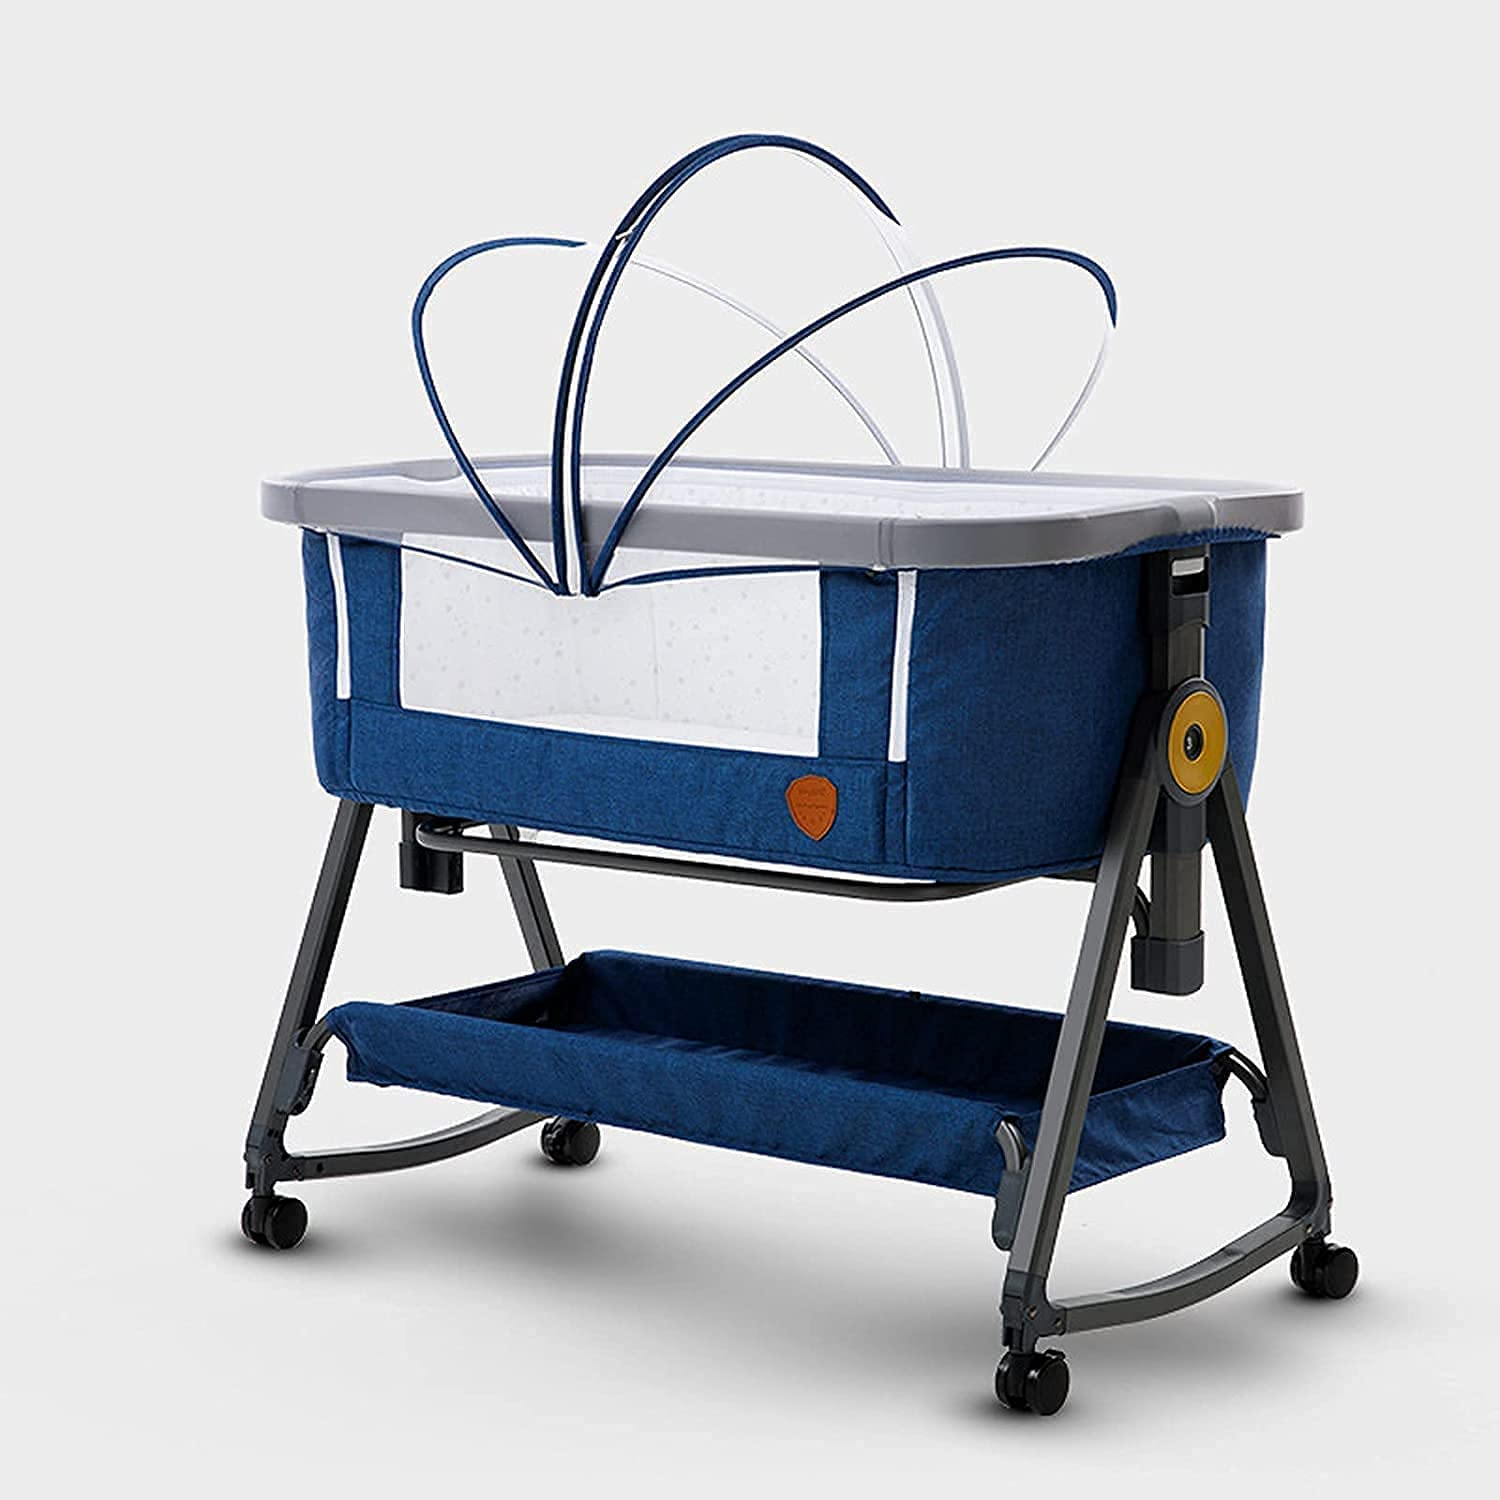 Bargain Hitc Newborn Bedside Cots A surprise price is realized Folding Travel Cot He of Levels 6 Baby